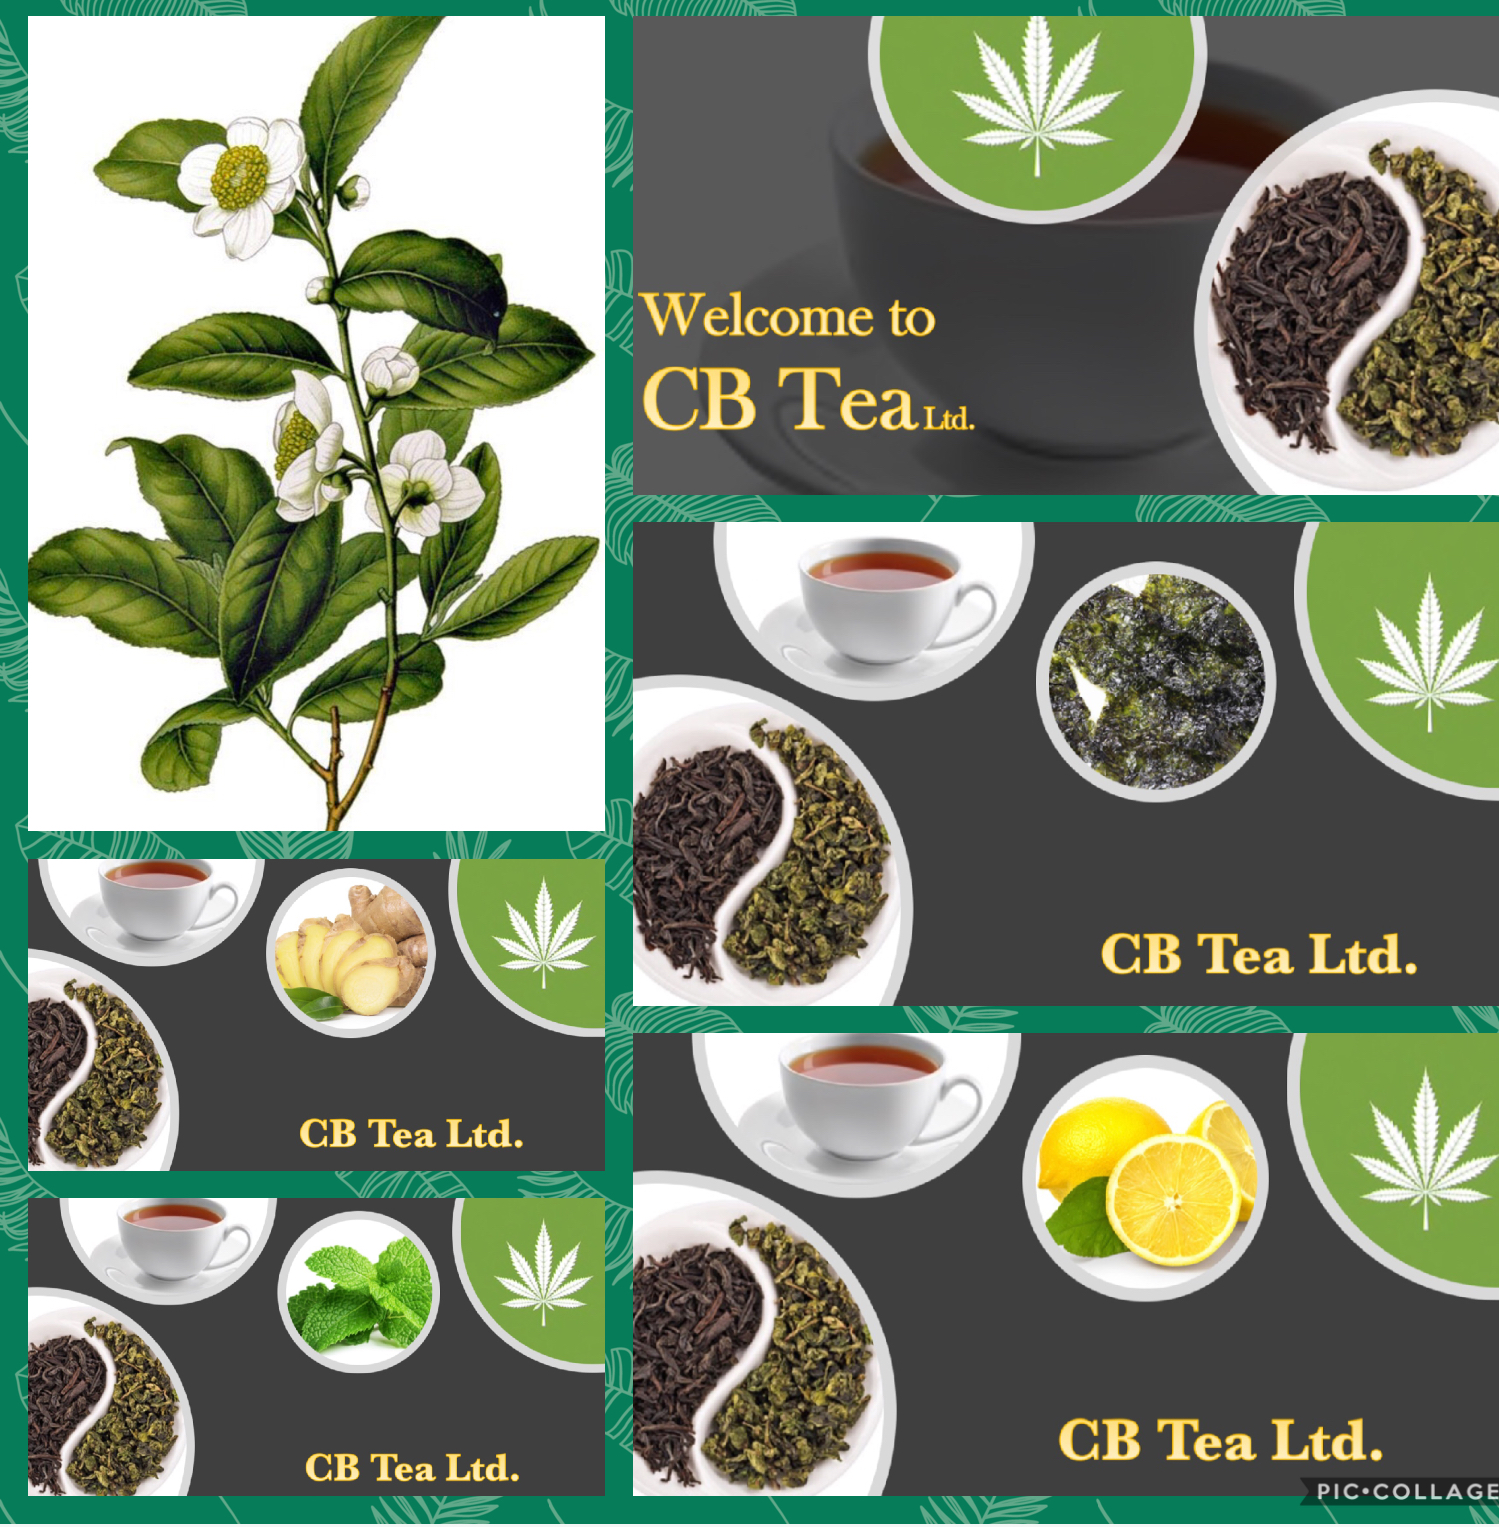 CB TEA LTD.